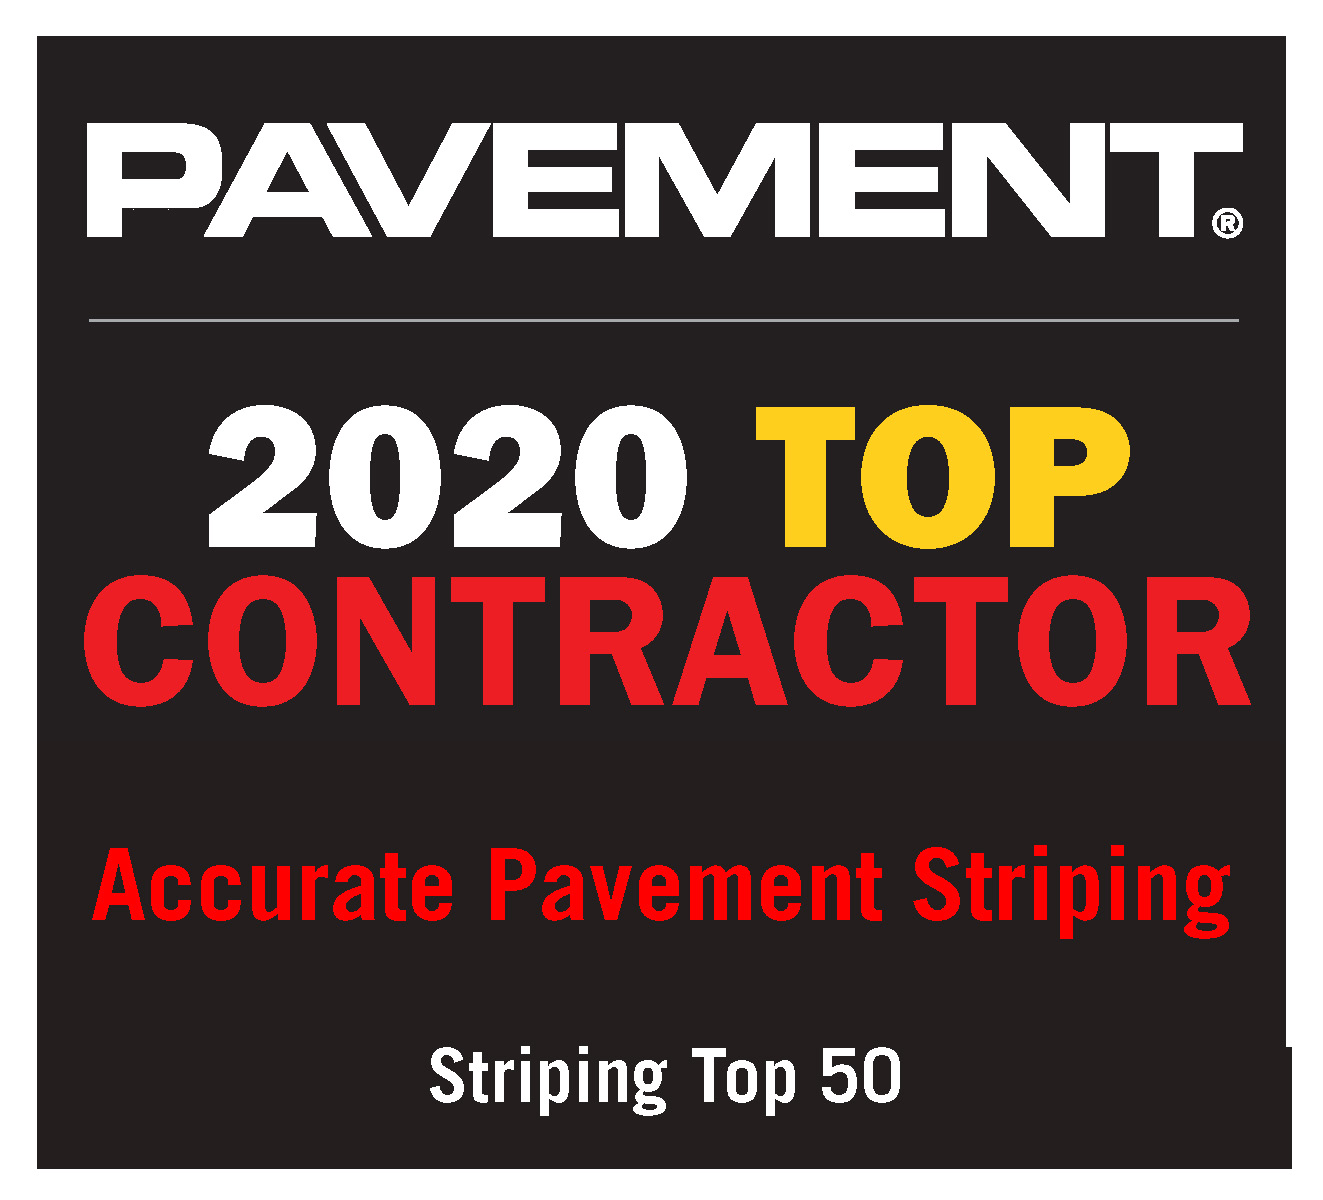 Accurate Pavement Striping named Top Contractor in 2020